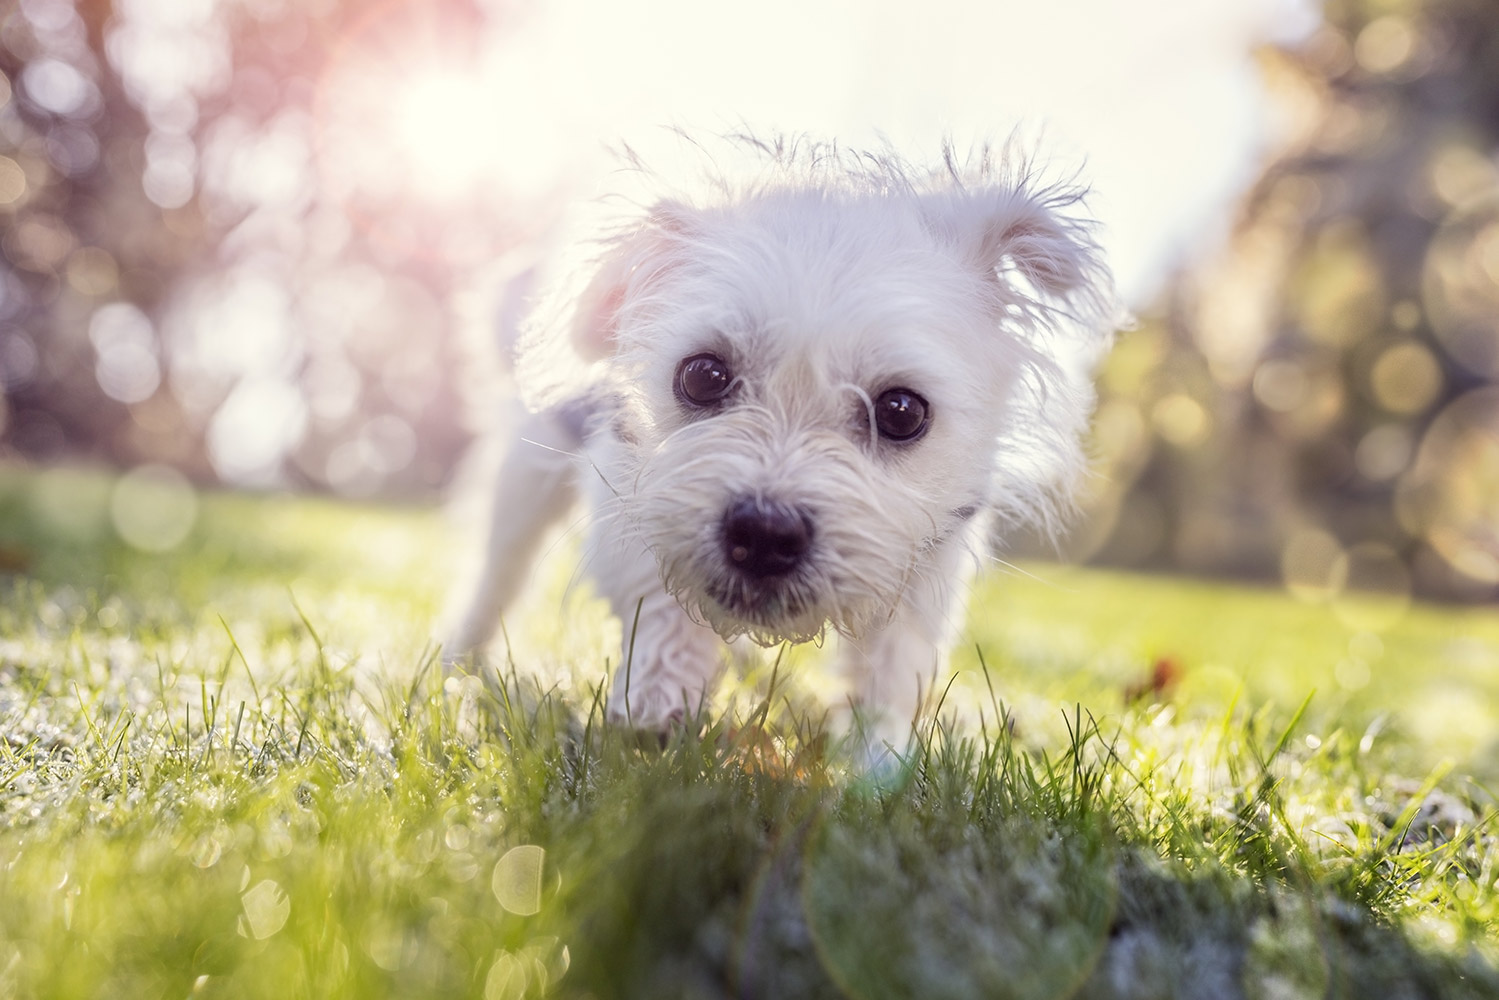 bigstock-Young-puppy-outside-walking-in-169197296